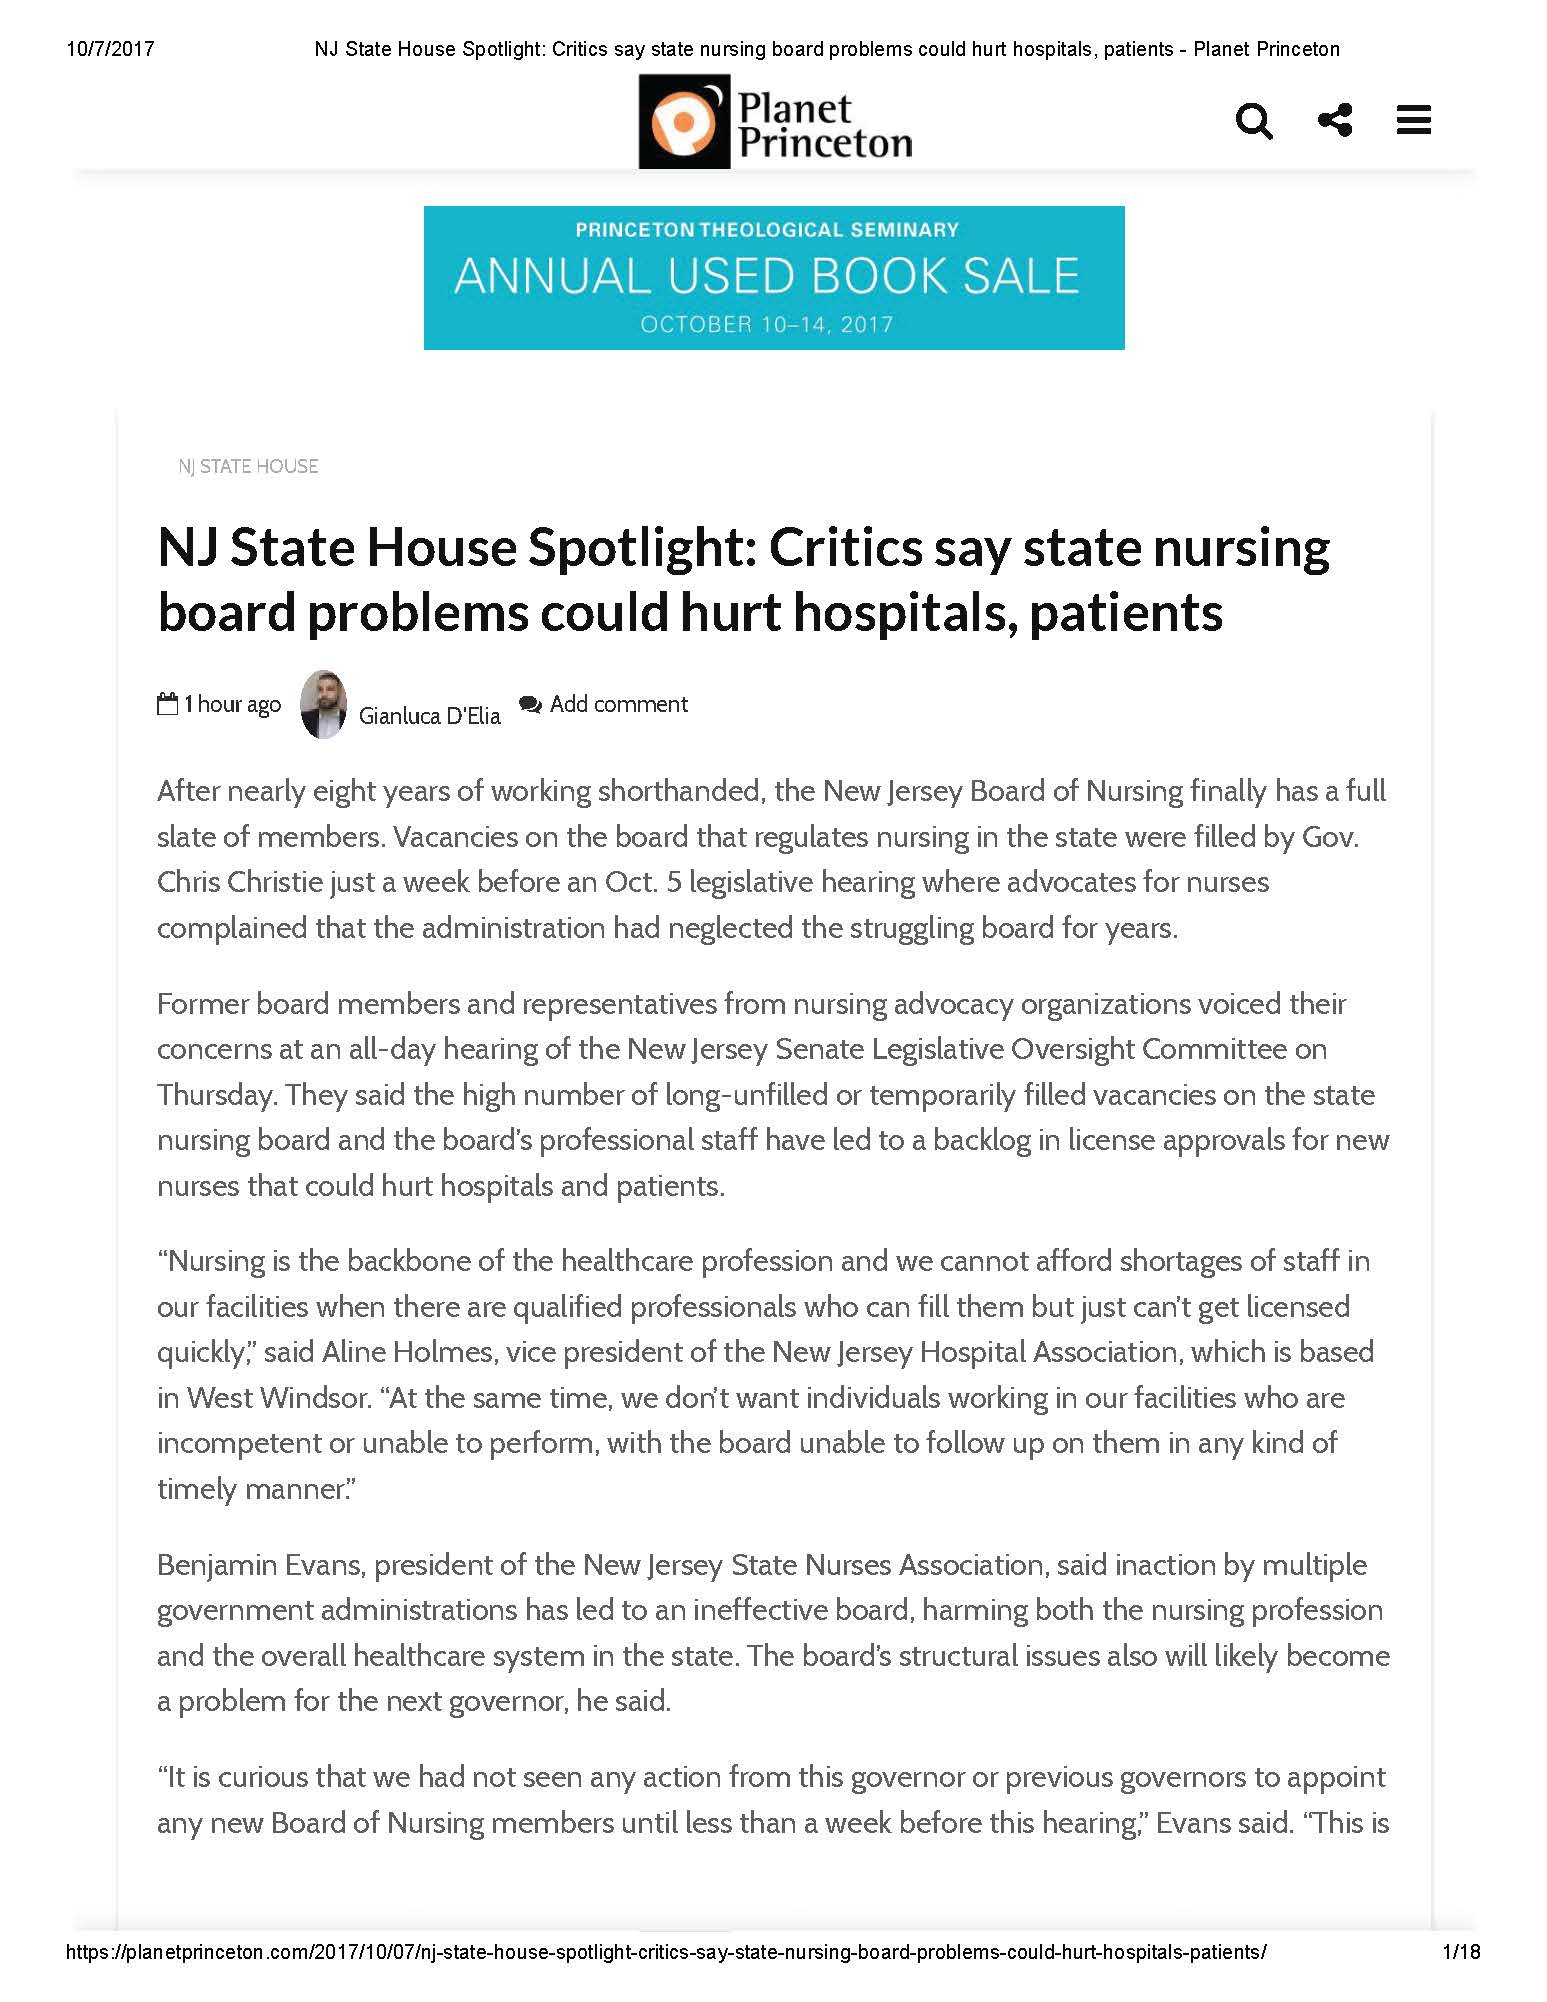 NJ State House Spotlight: Critics say state nursing board problems